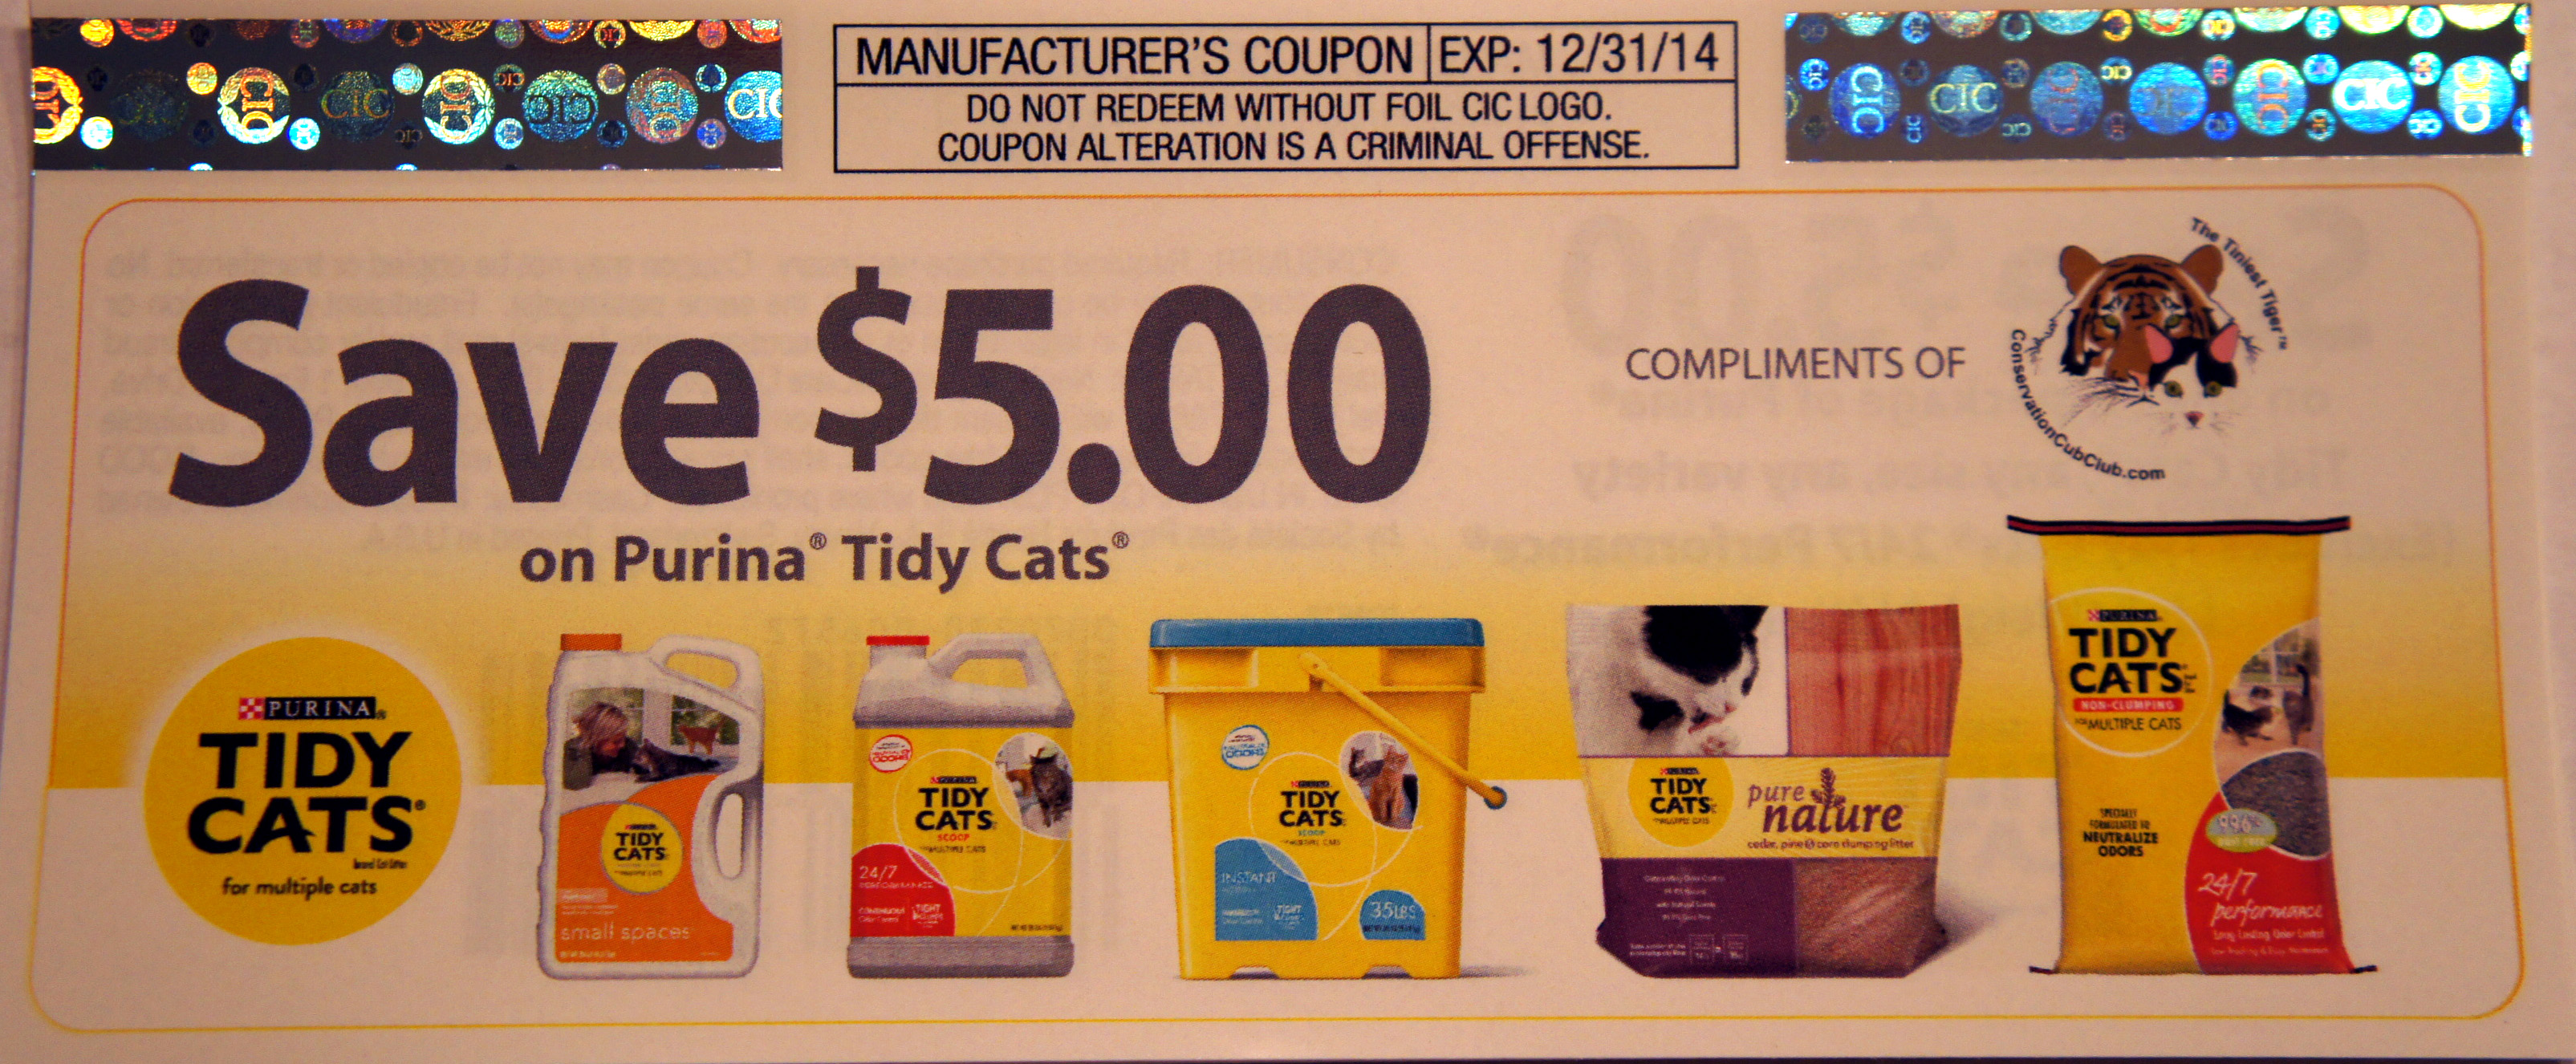 picture relating to Tidy Cat Printable 3.00 Coupon referred to as Printable tidy cat muddle coupon codes : Lowes coupon codes 2018